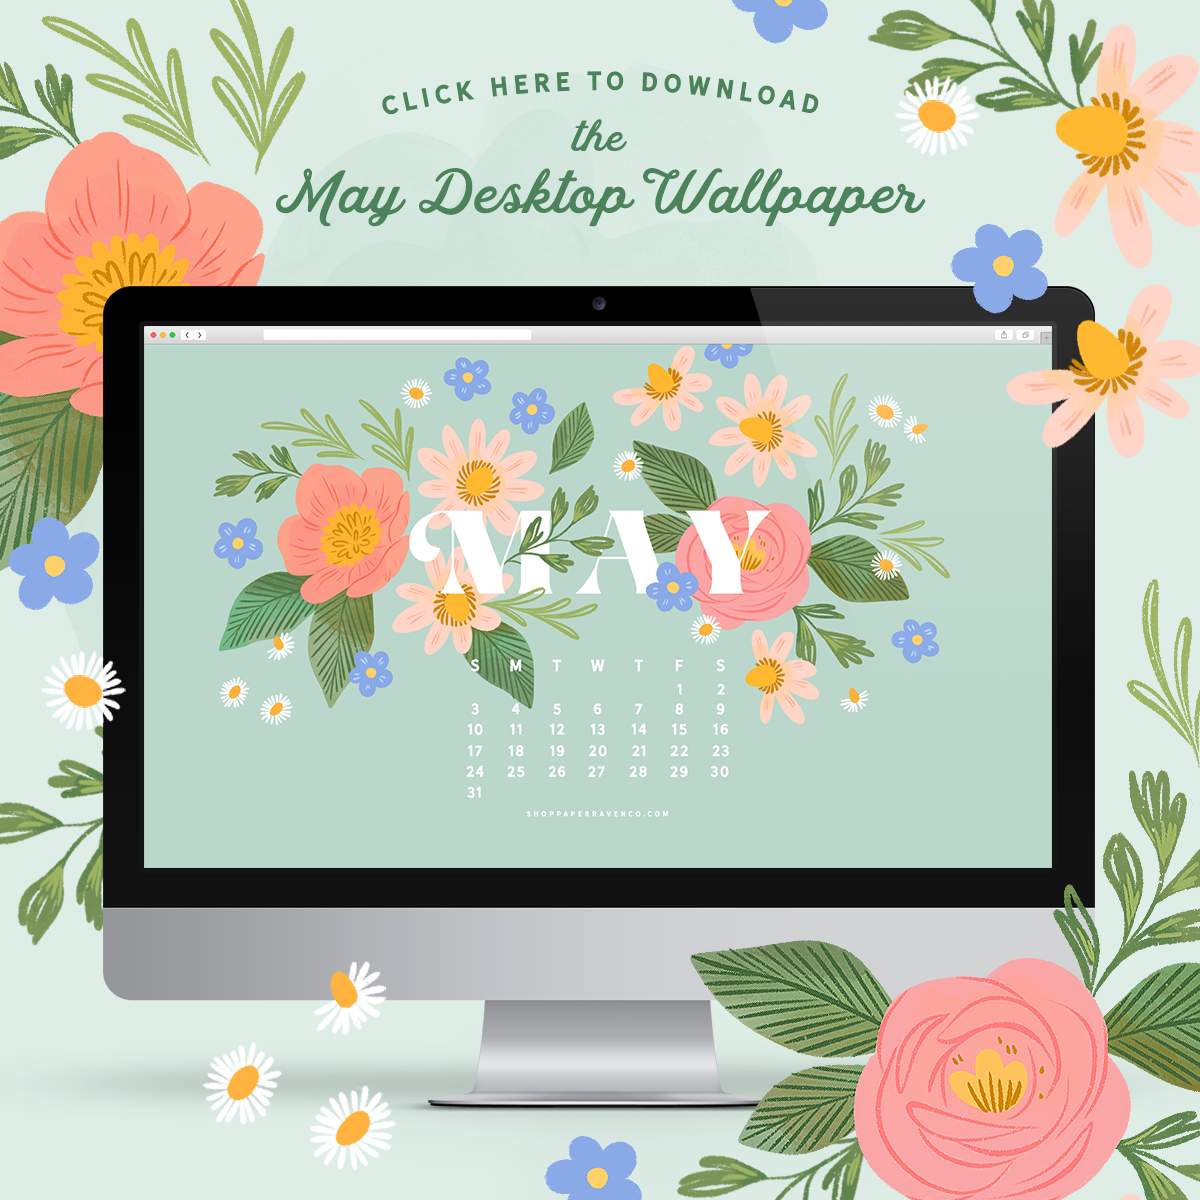 May 2020 Illustrated Desktop Wallpaper by Paper Raven Co. | www.ShopPaperRavenCo.com #desktopwallpaper #desktopdownload #dressyourtech